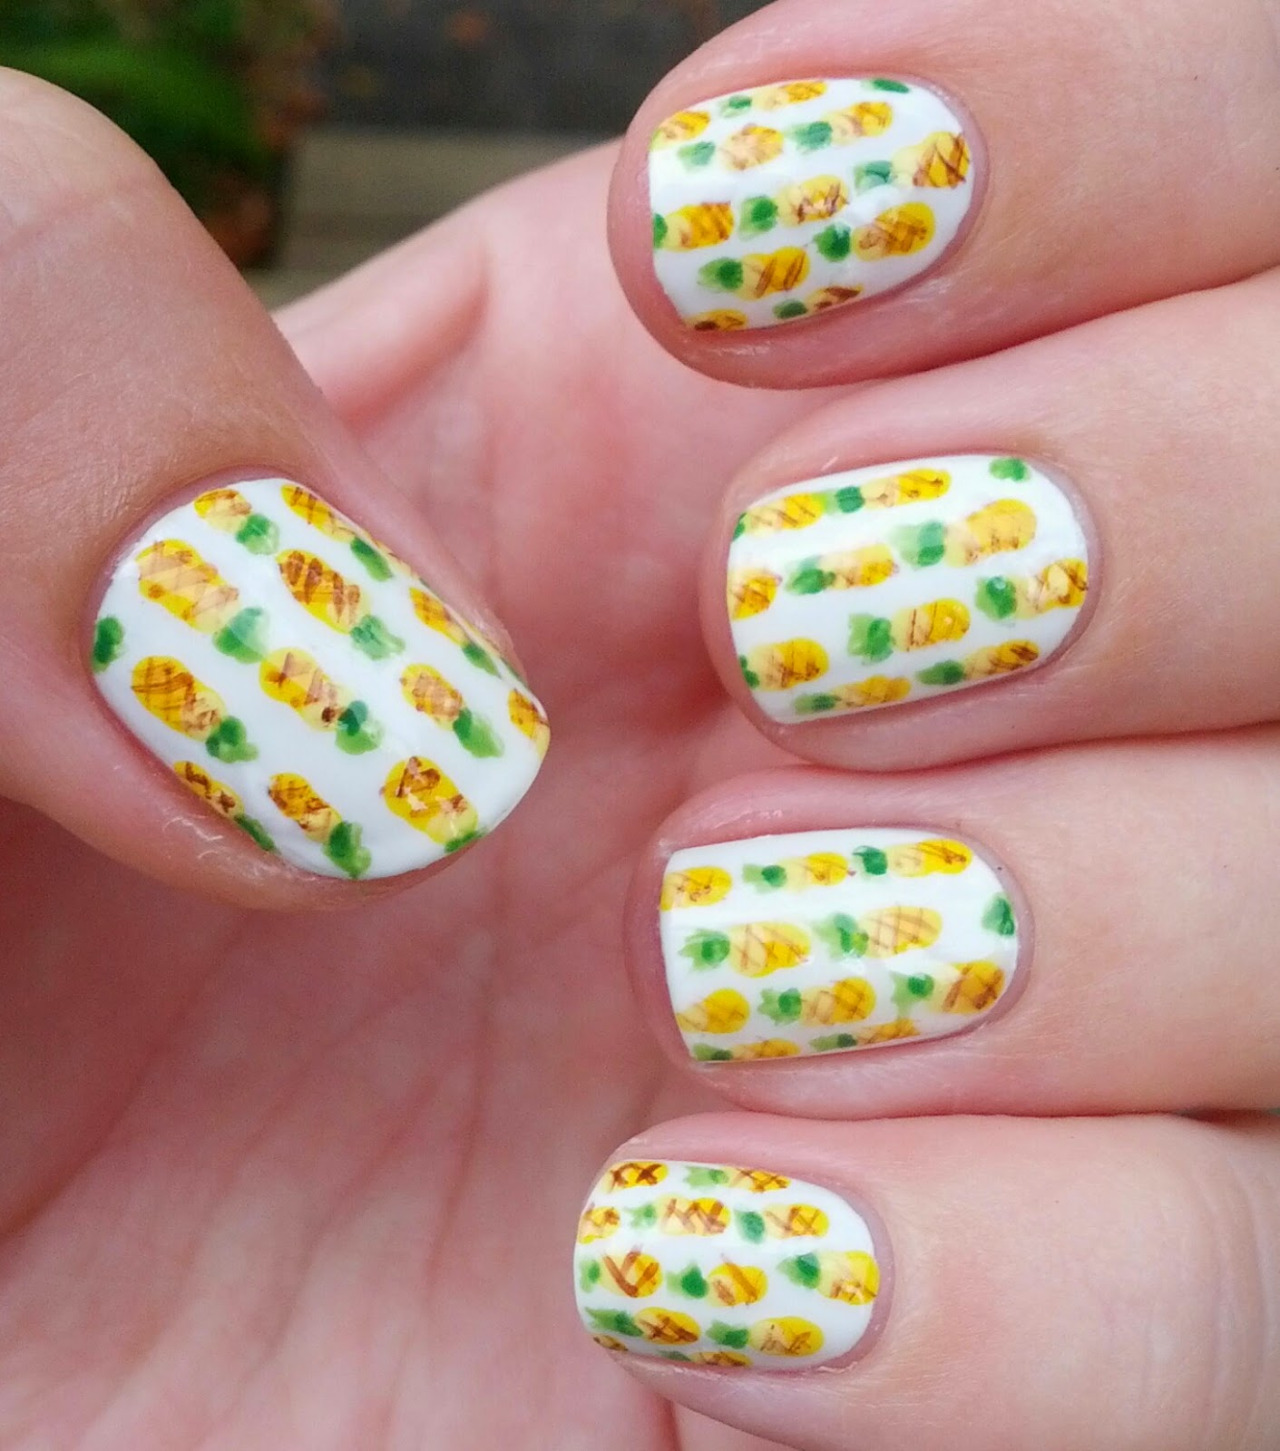 pineapple nail art design 25 24 Beautiful Pineapple Nail Art Designs 2015 24 Beautiful Pineapple Nail Art Designs 2015 pineapple nail art design 25